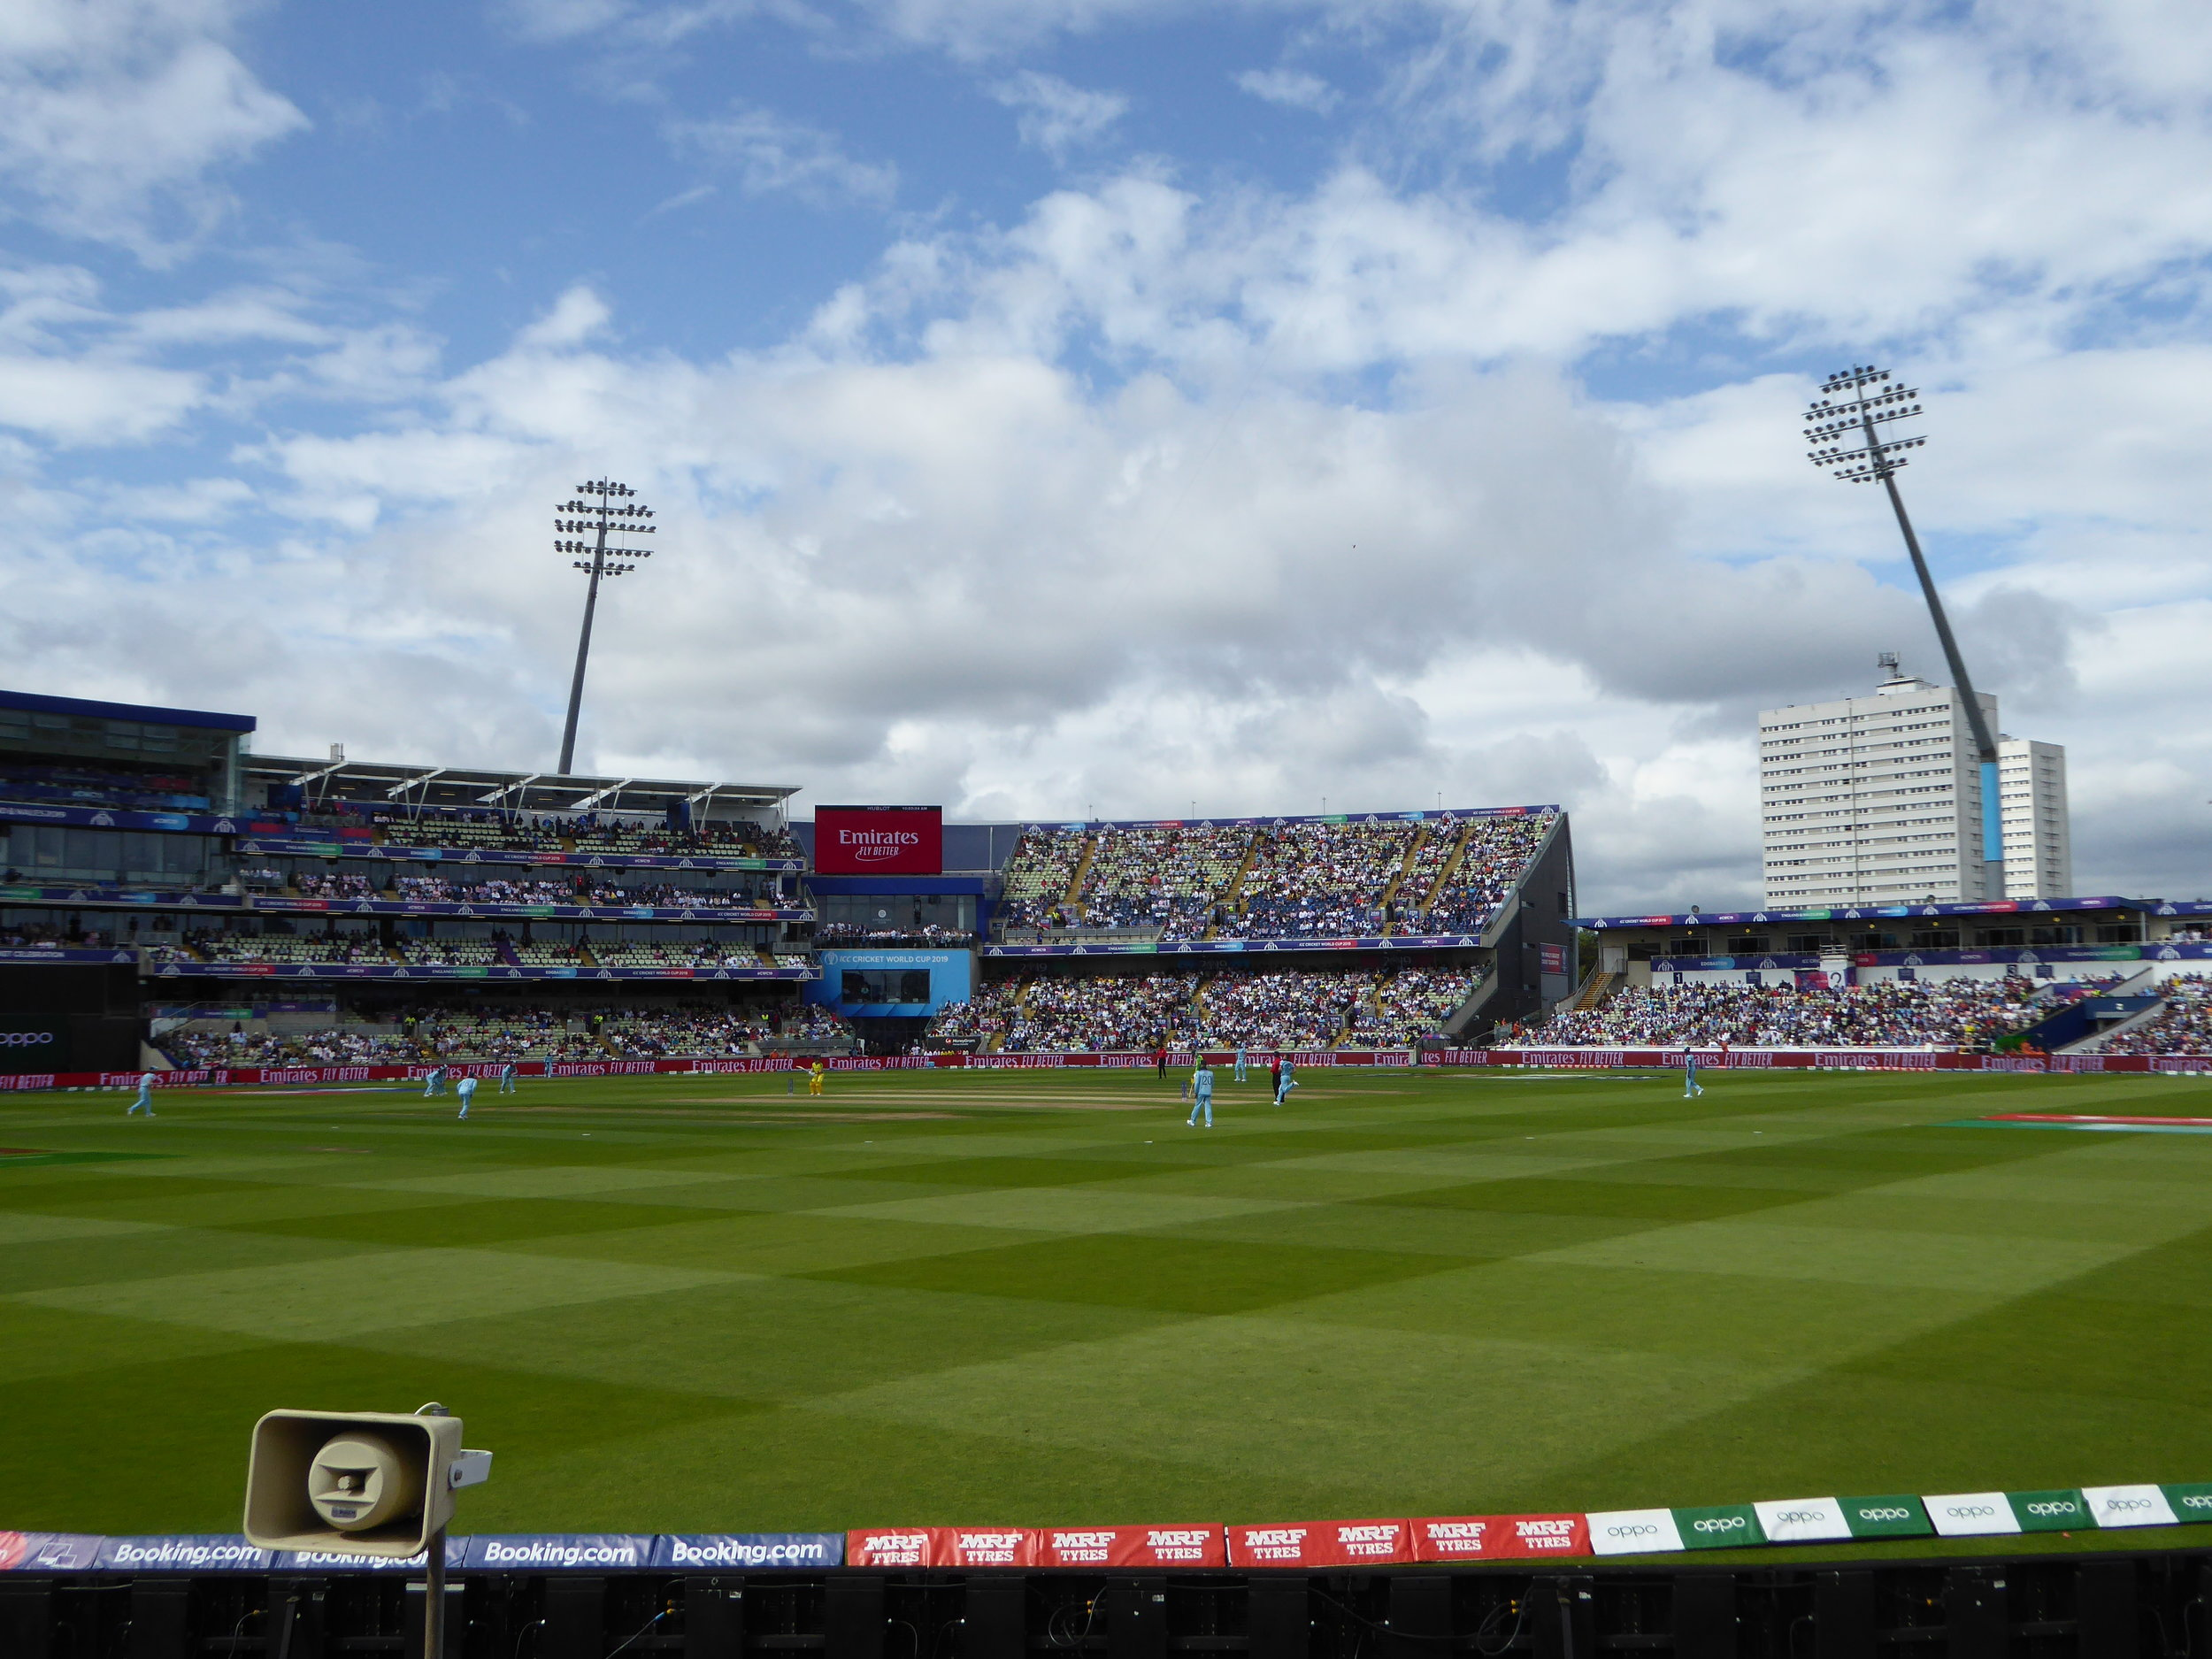 England v Australia: world cup semi-final, Edgbaston, 11 July 2019 - after which I was knocked out by the ICC's ticketing system.